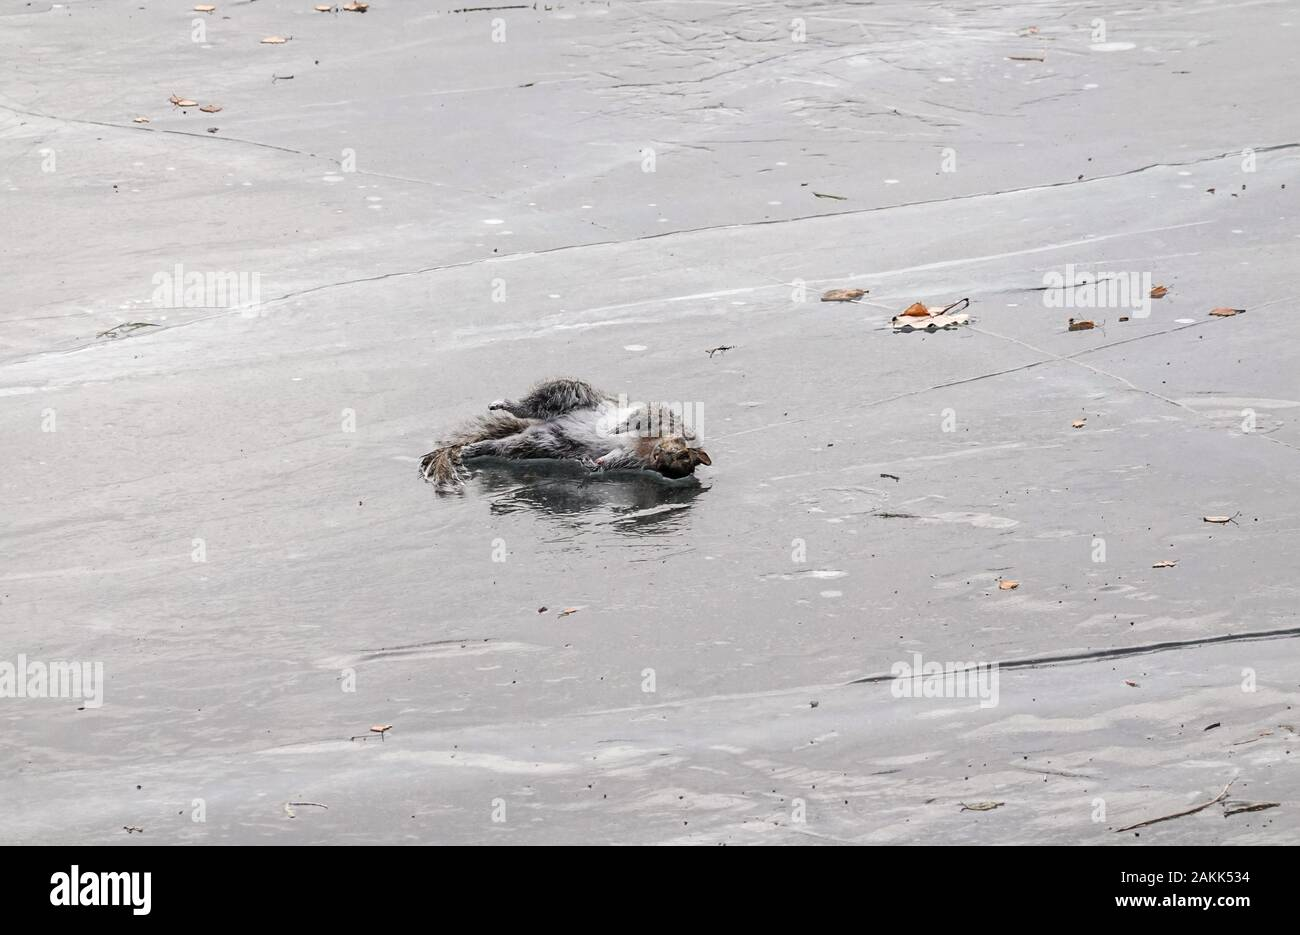 dead squirrel frozen on ice sheet in winter 2019 2020 Stock Photo